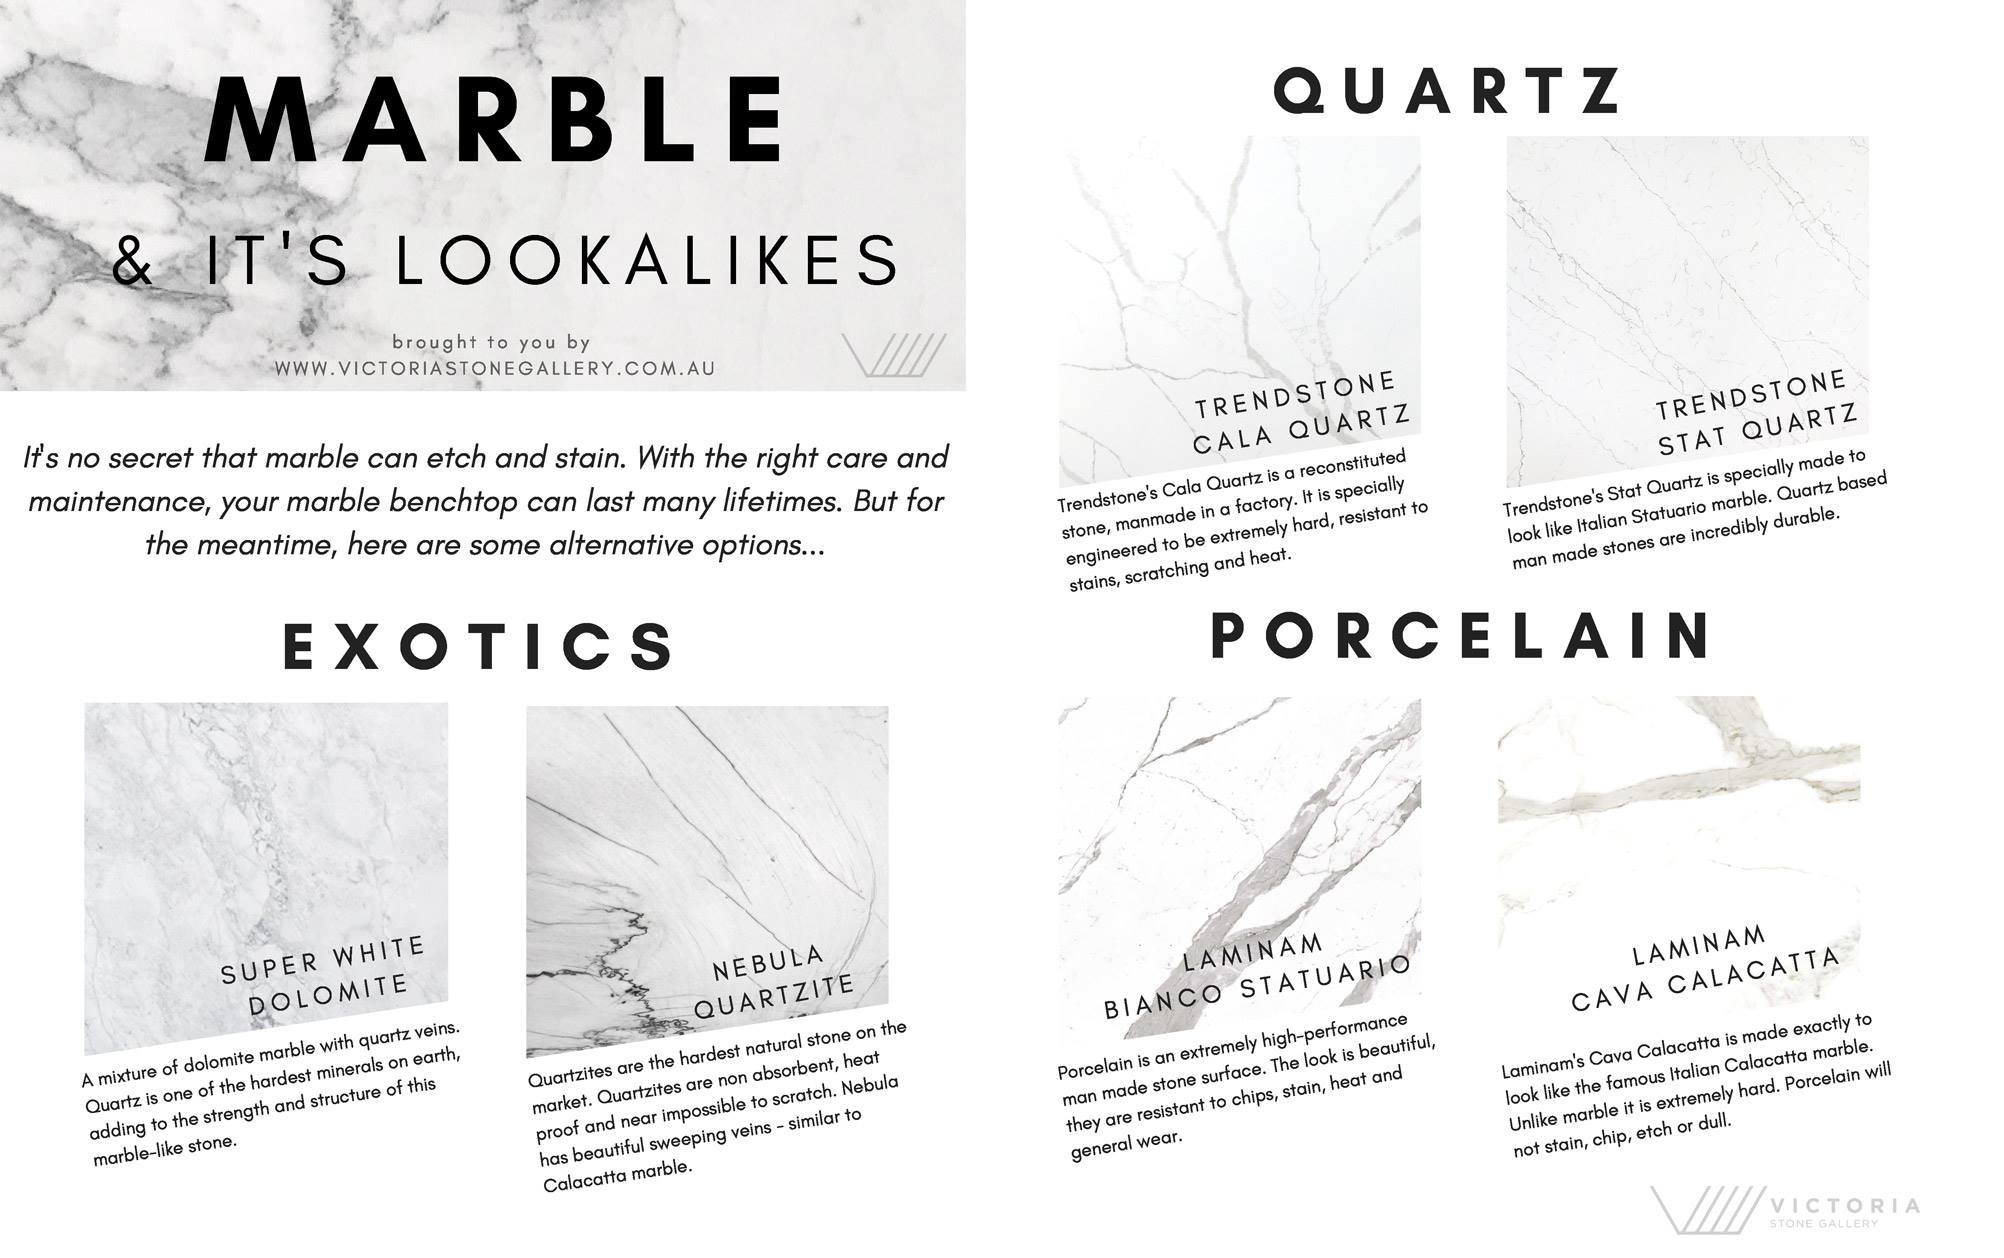 Infographic showing alternative stones to marble. Suggestions are Quartzite, Super White, Trendstone and Porcelain